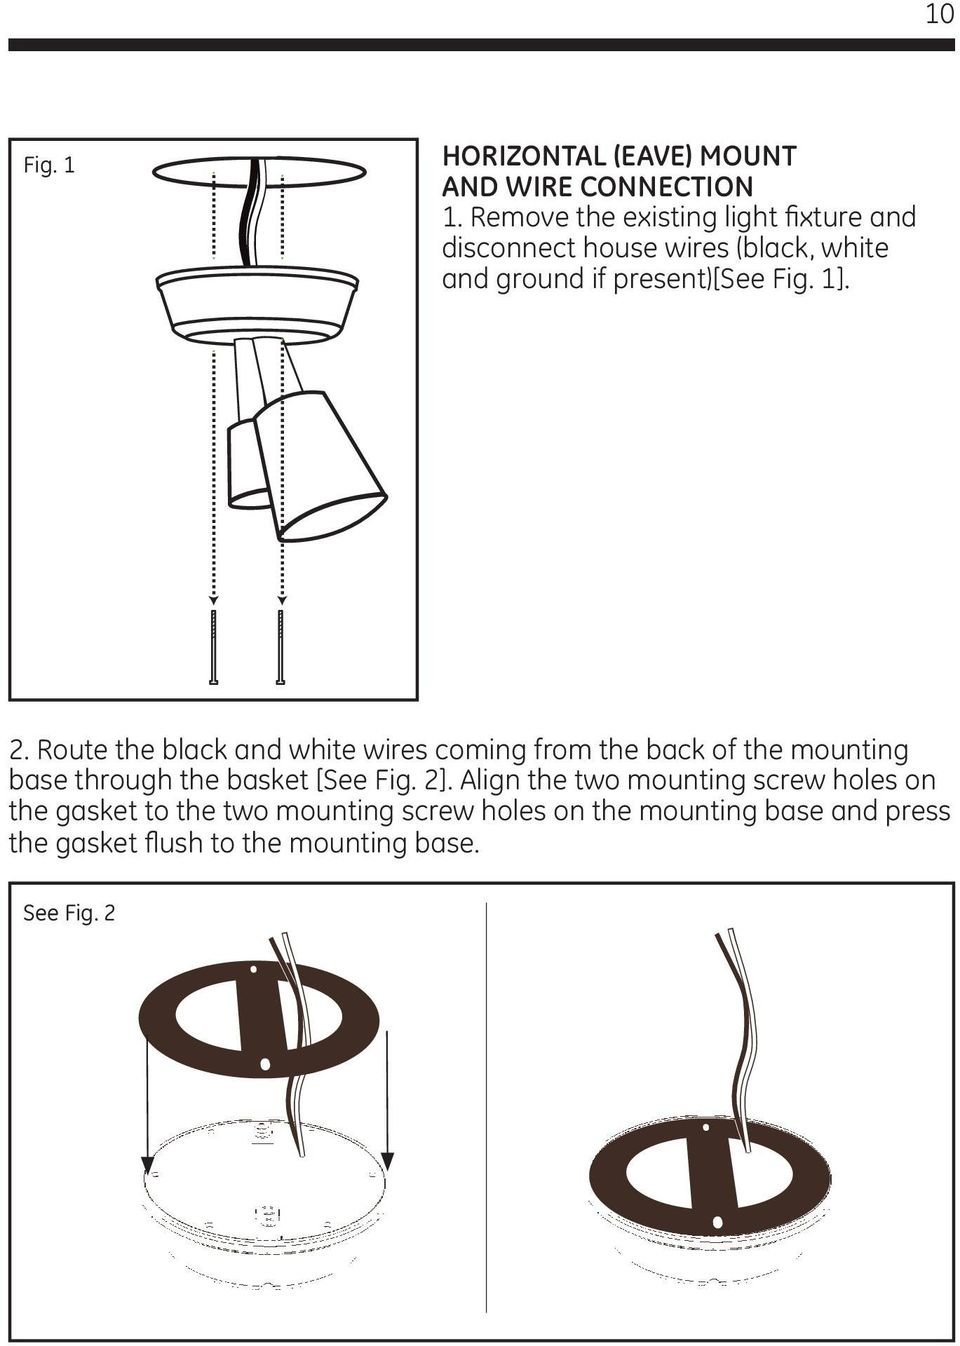 Led Security Spotlight User Manual Pdf Light Fixture Wiring 2 White Black Route The And Wires Coming From Back Of Mounting Base